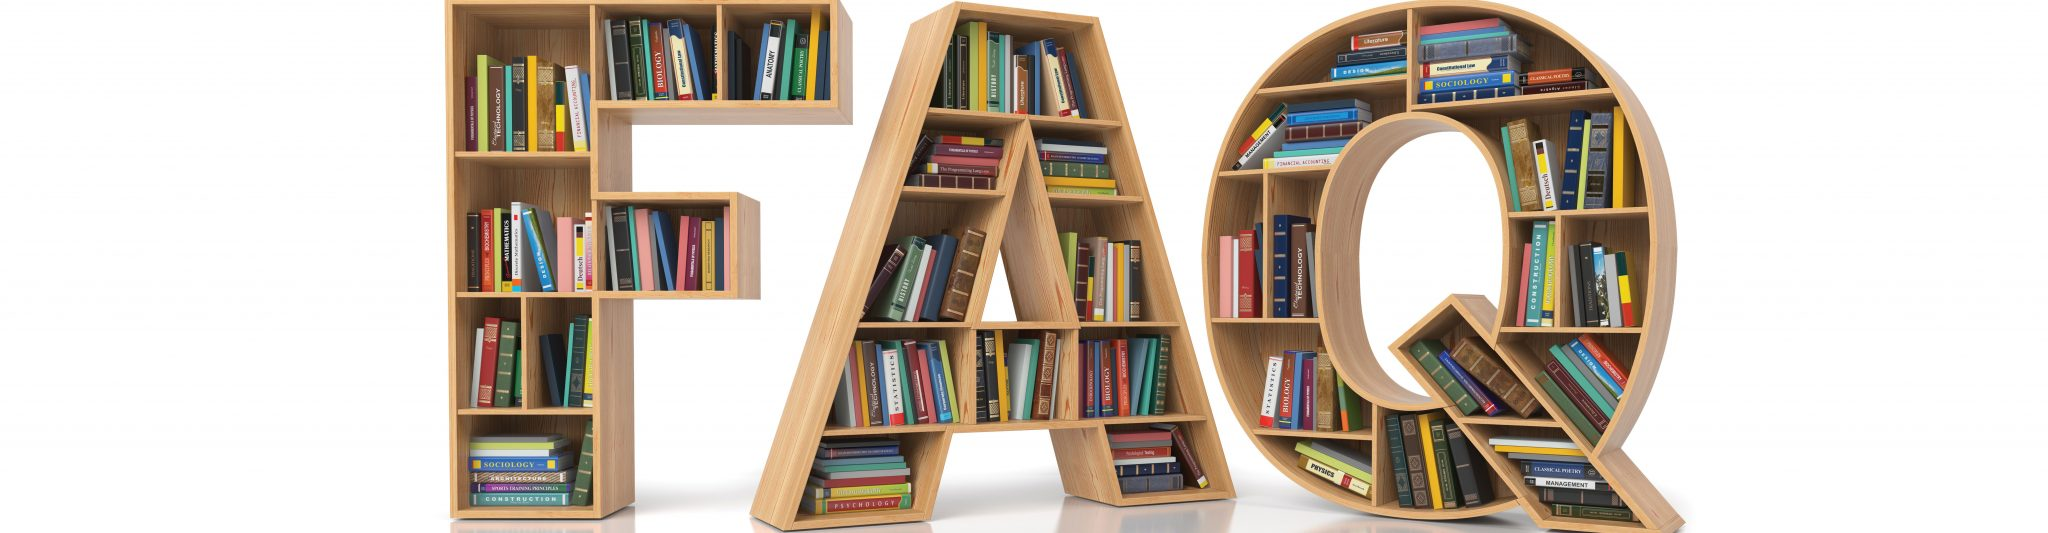 books on a faq book shelf